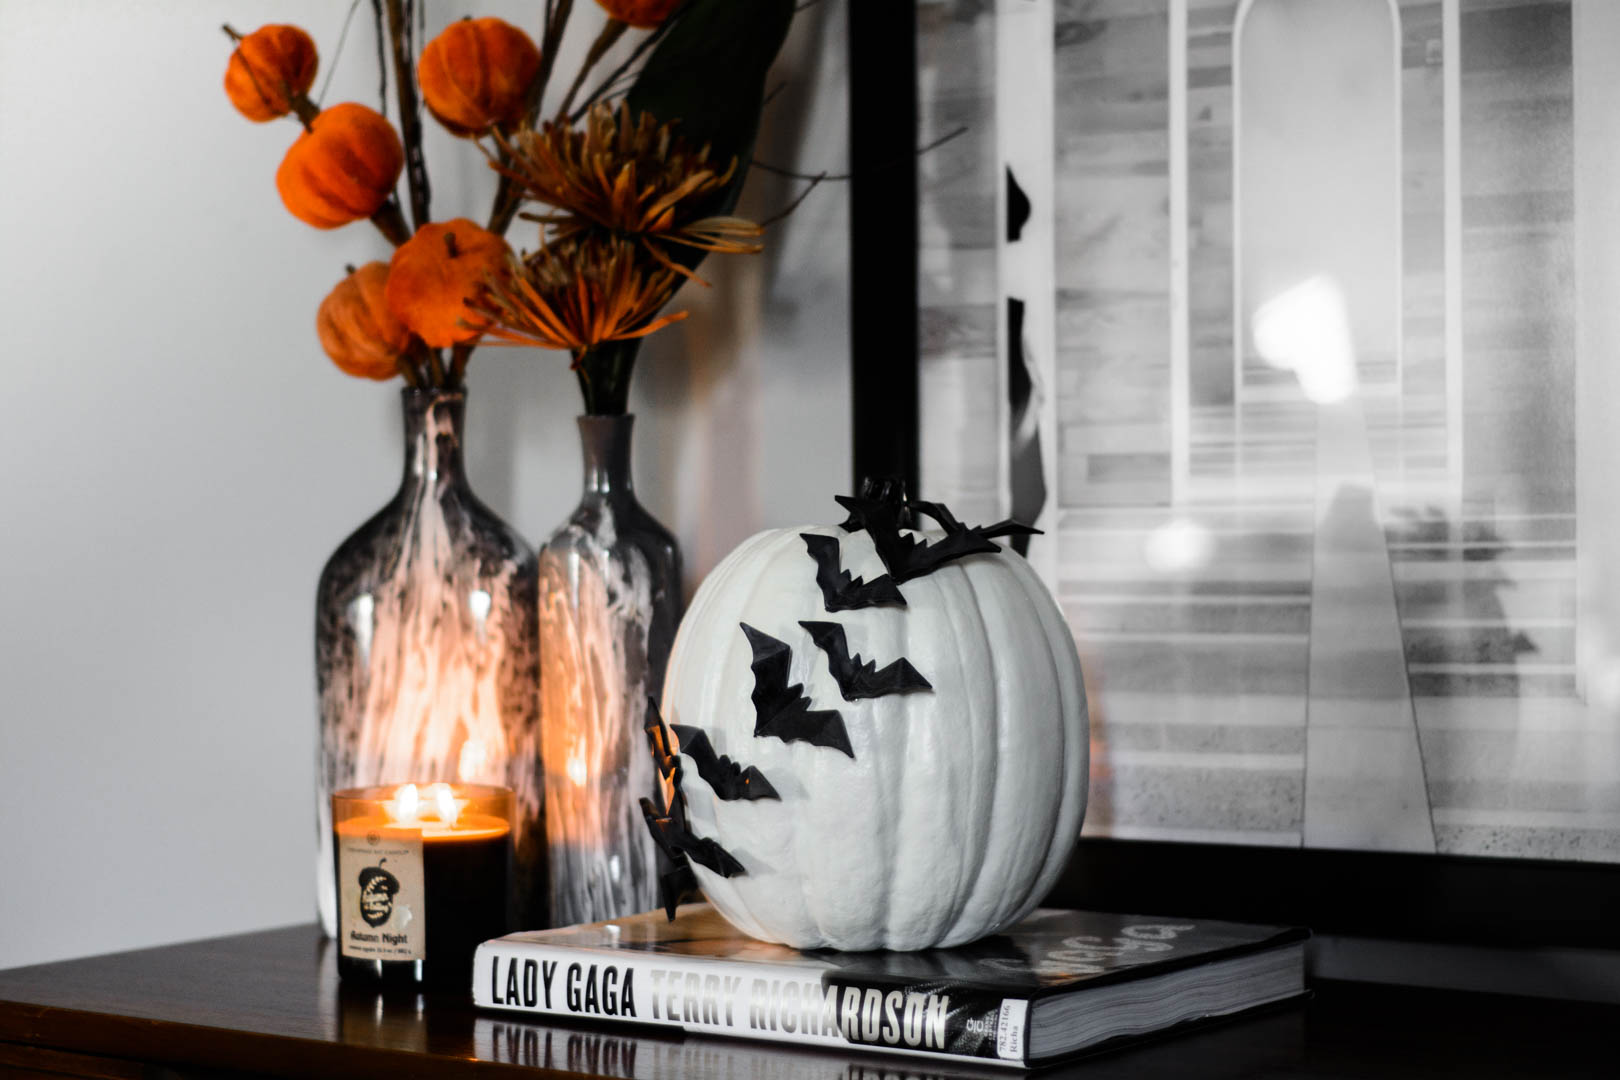 Get inspired to spookify your home, plan for a fun party and celebrate the halloween season in style! Our Fall Decor Weekend Wishing